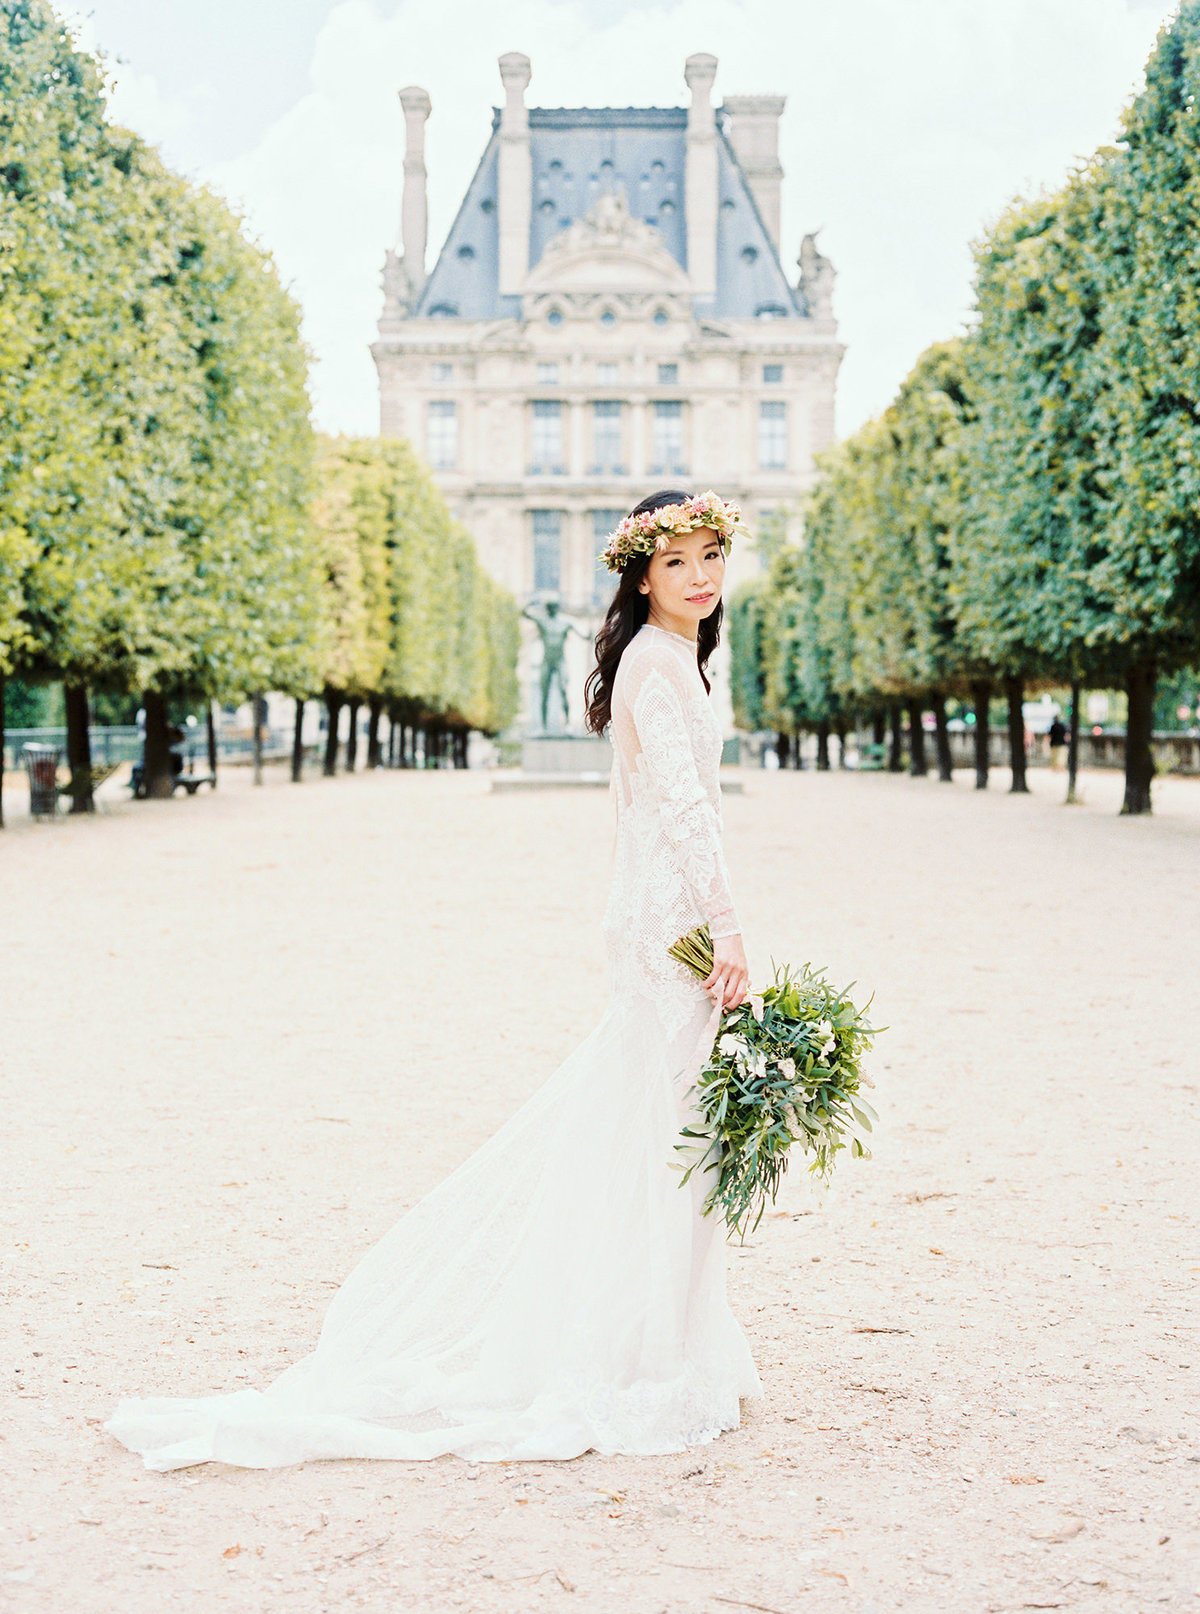 Paris_Wedding_Photographer_204